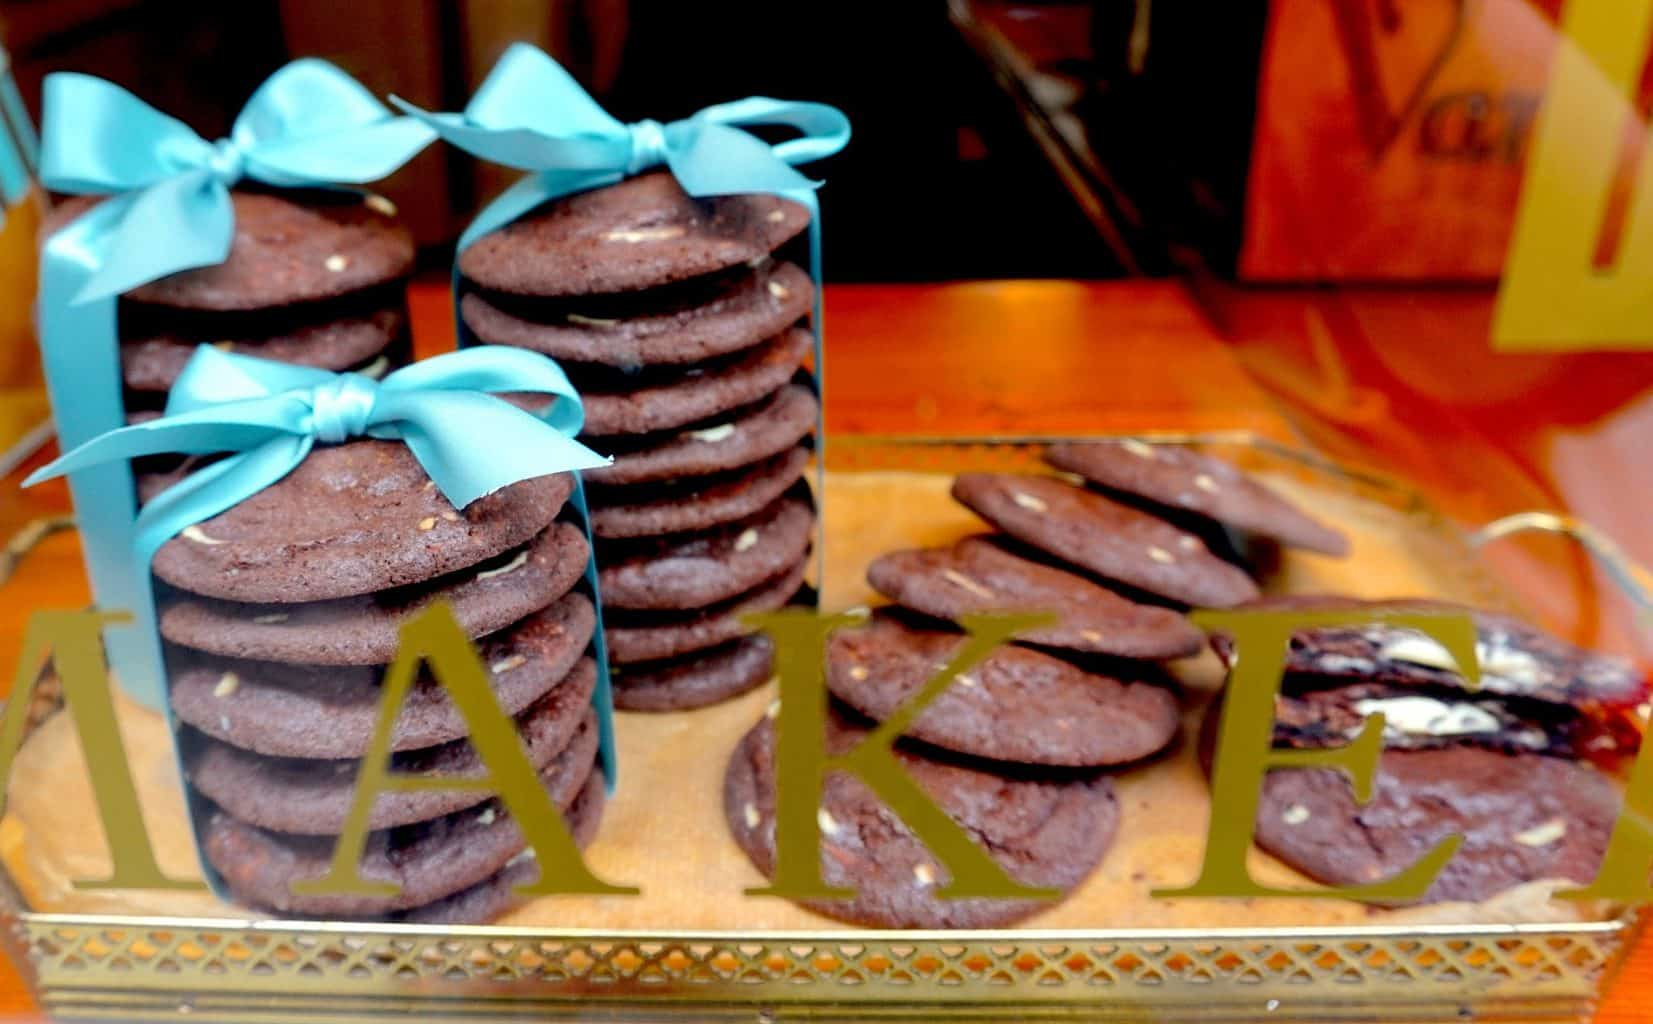 Chocolate cookies tied with a turquoise bow at Van Stepele in Amsterdam